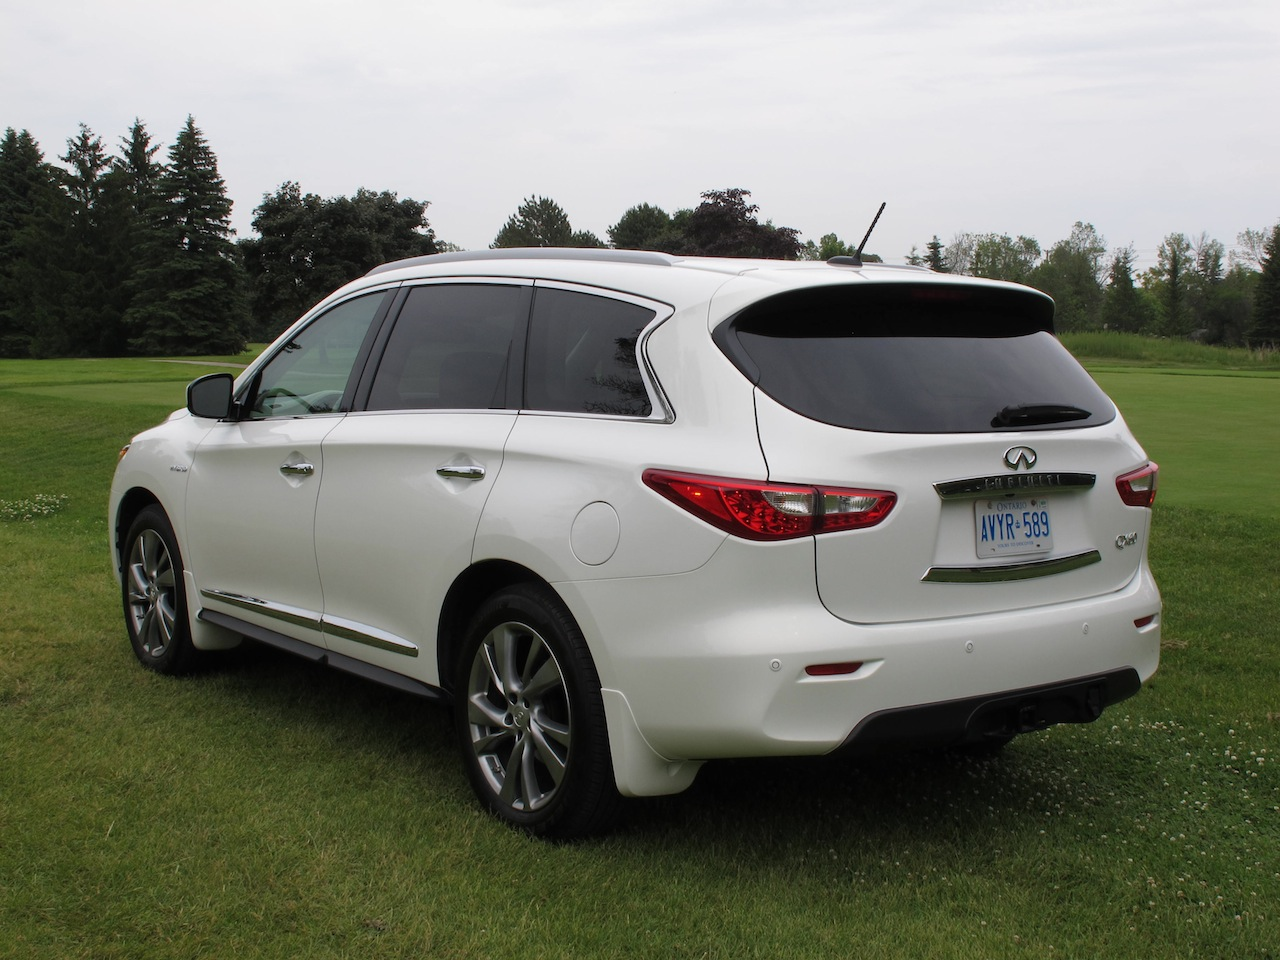 2014 Infiniti Qx60 Hybrid Awd2014 Awd I By Fuse Box Chinese Review Cars Photos